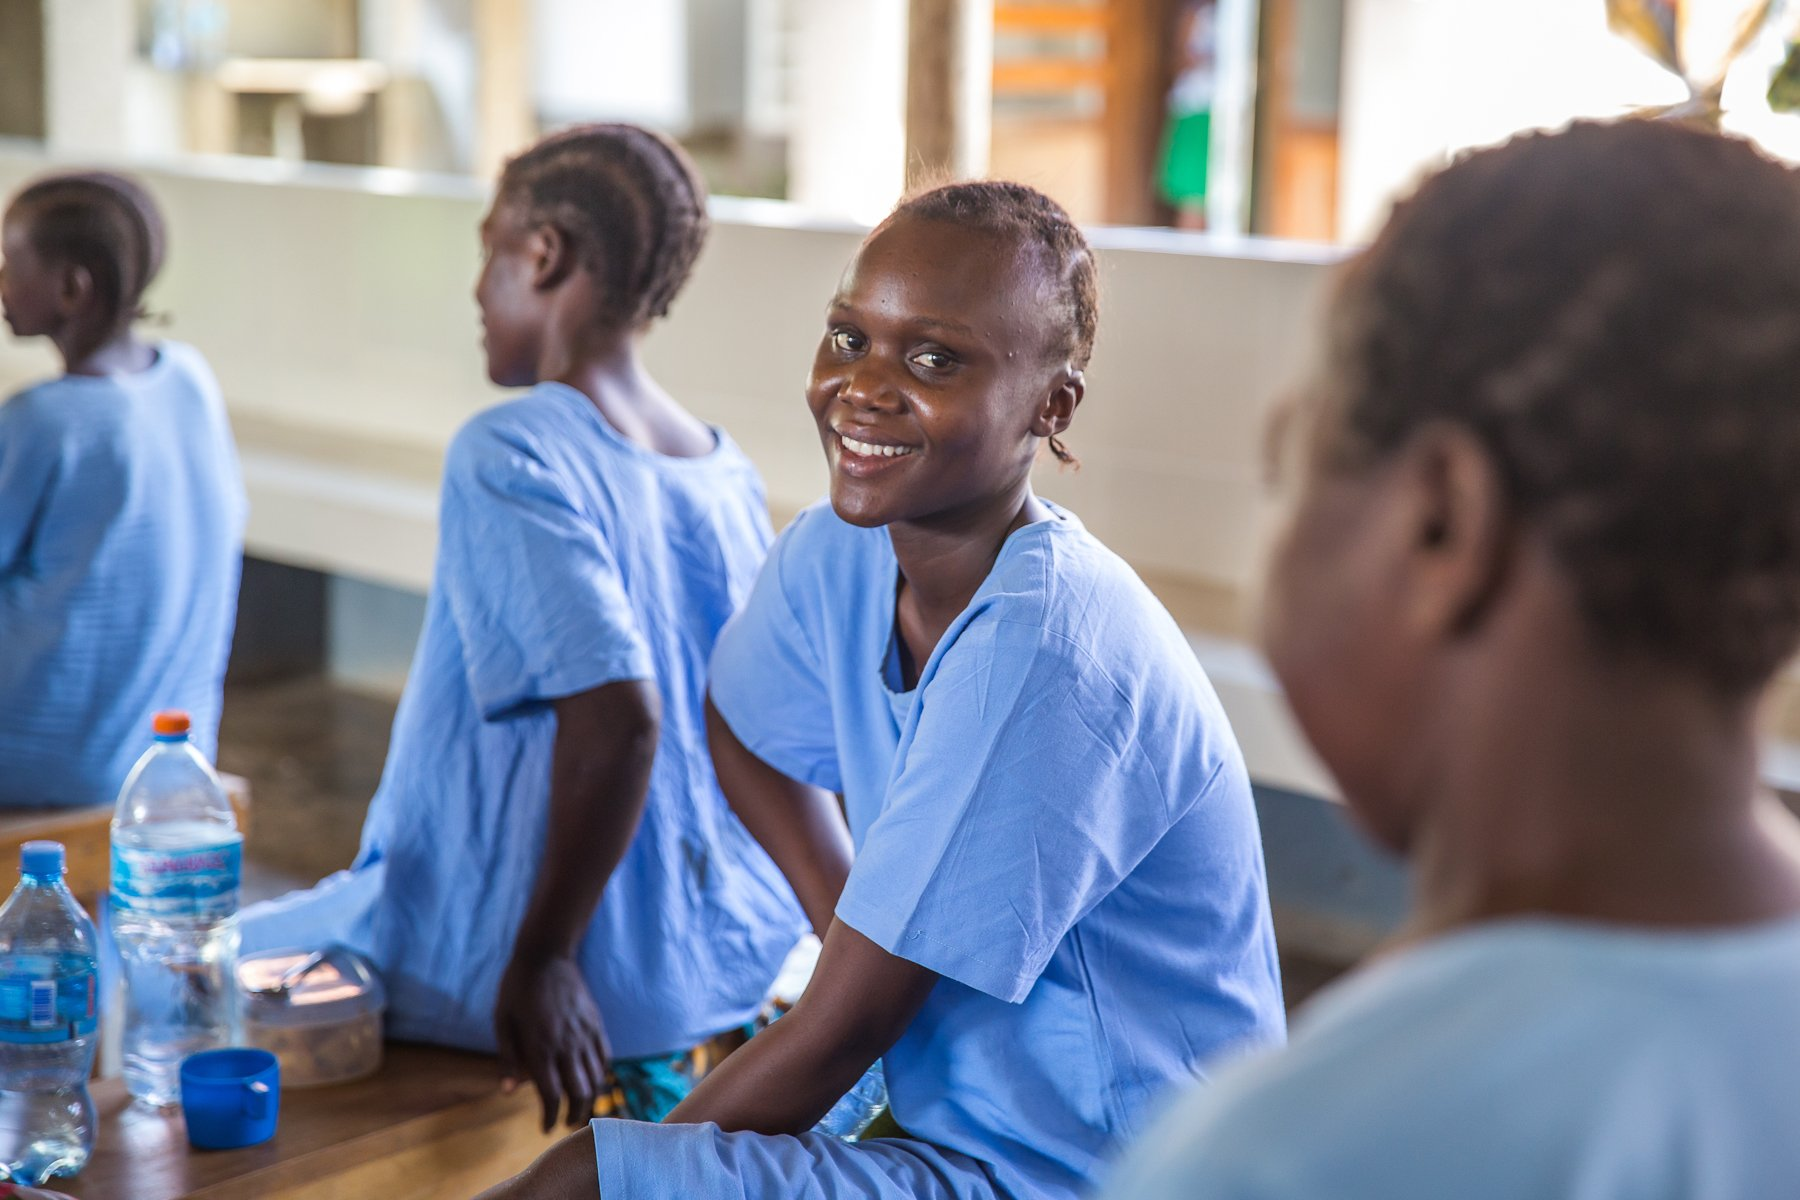 CCBRT has provided free holistic #fistula care in Tanzania since 2003. Telling our patients' stories respectfully is vital #HerWords https://t.co/KiFH41gGb5